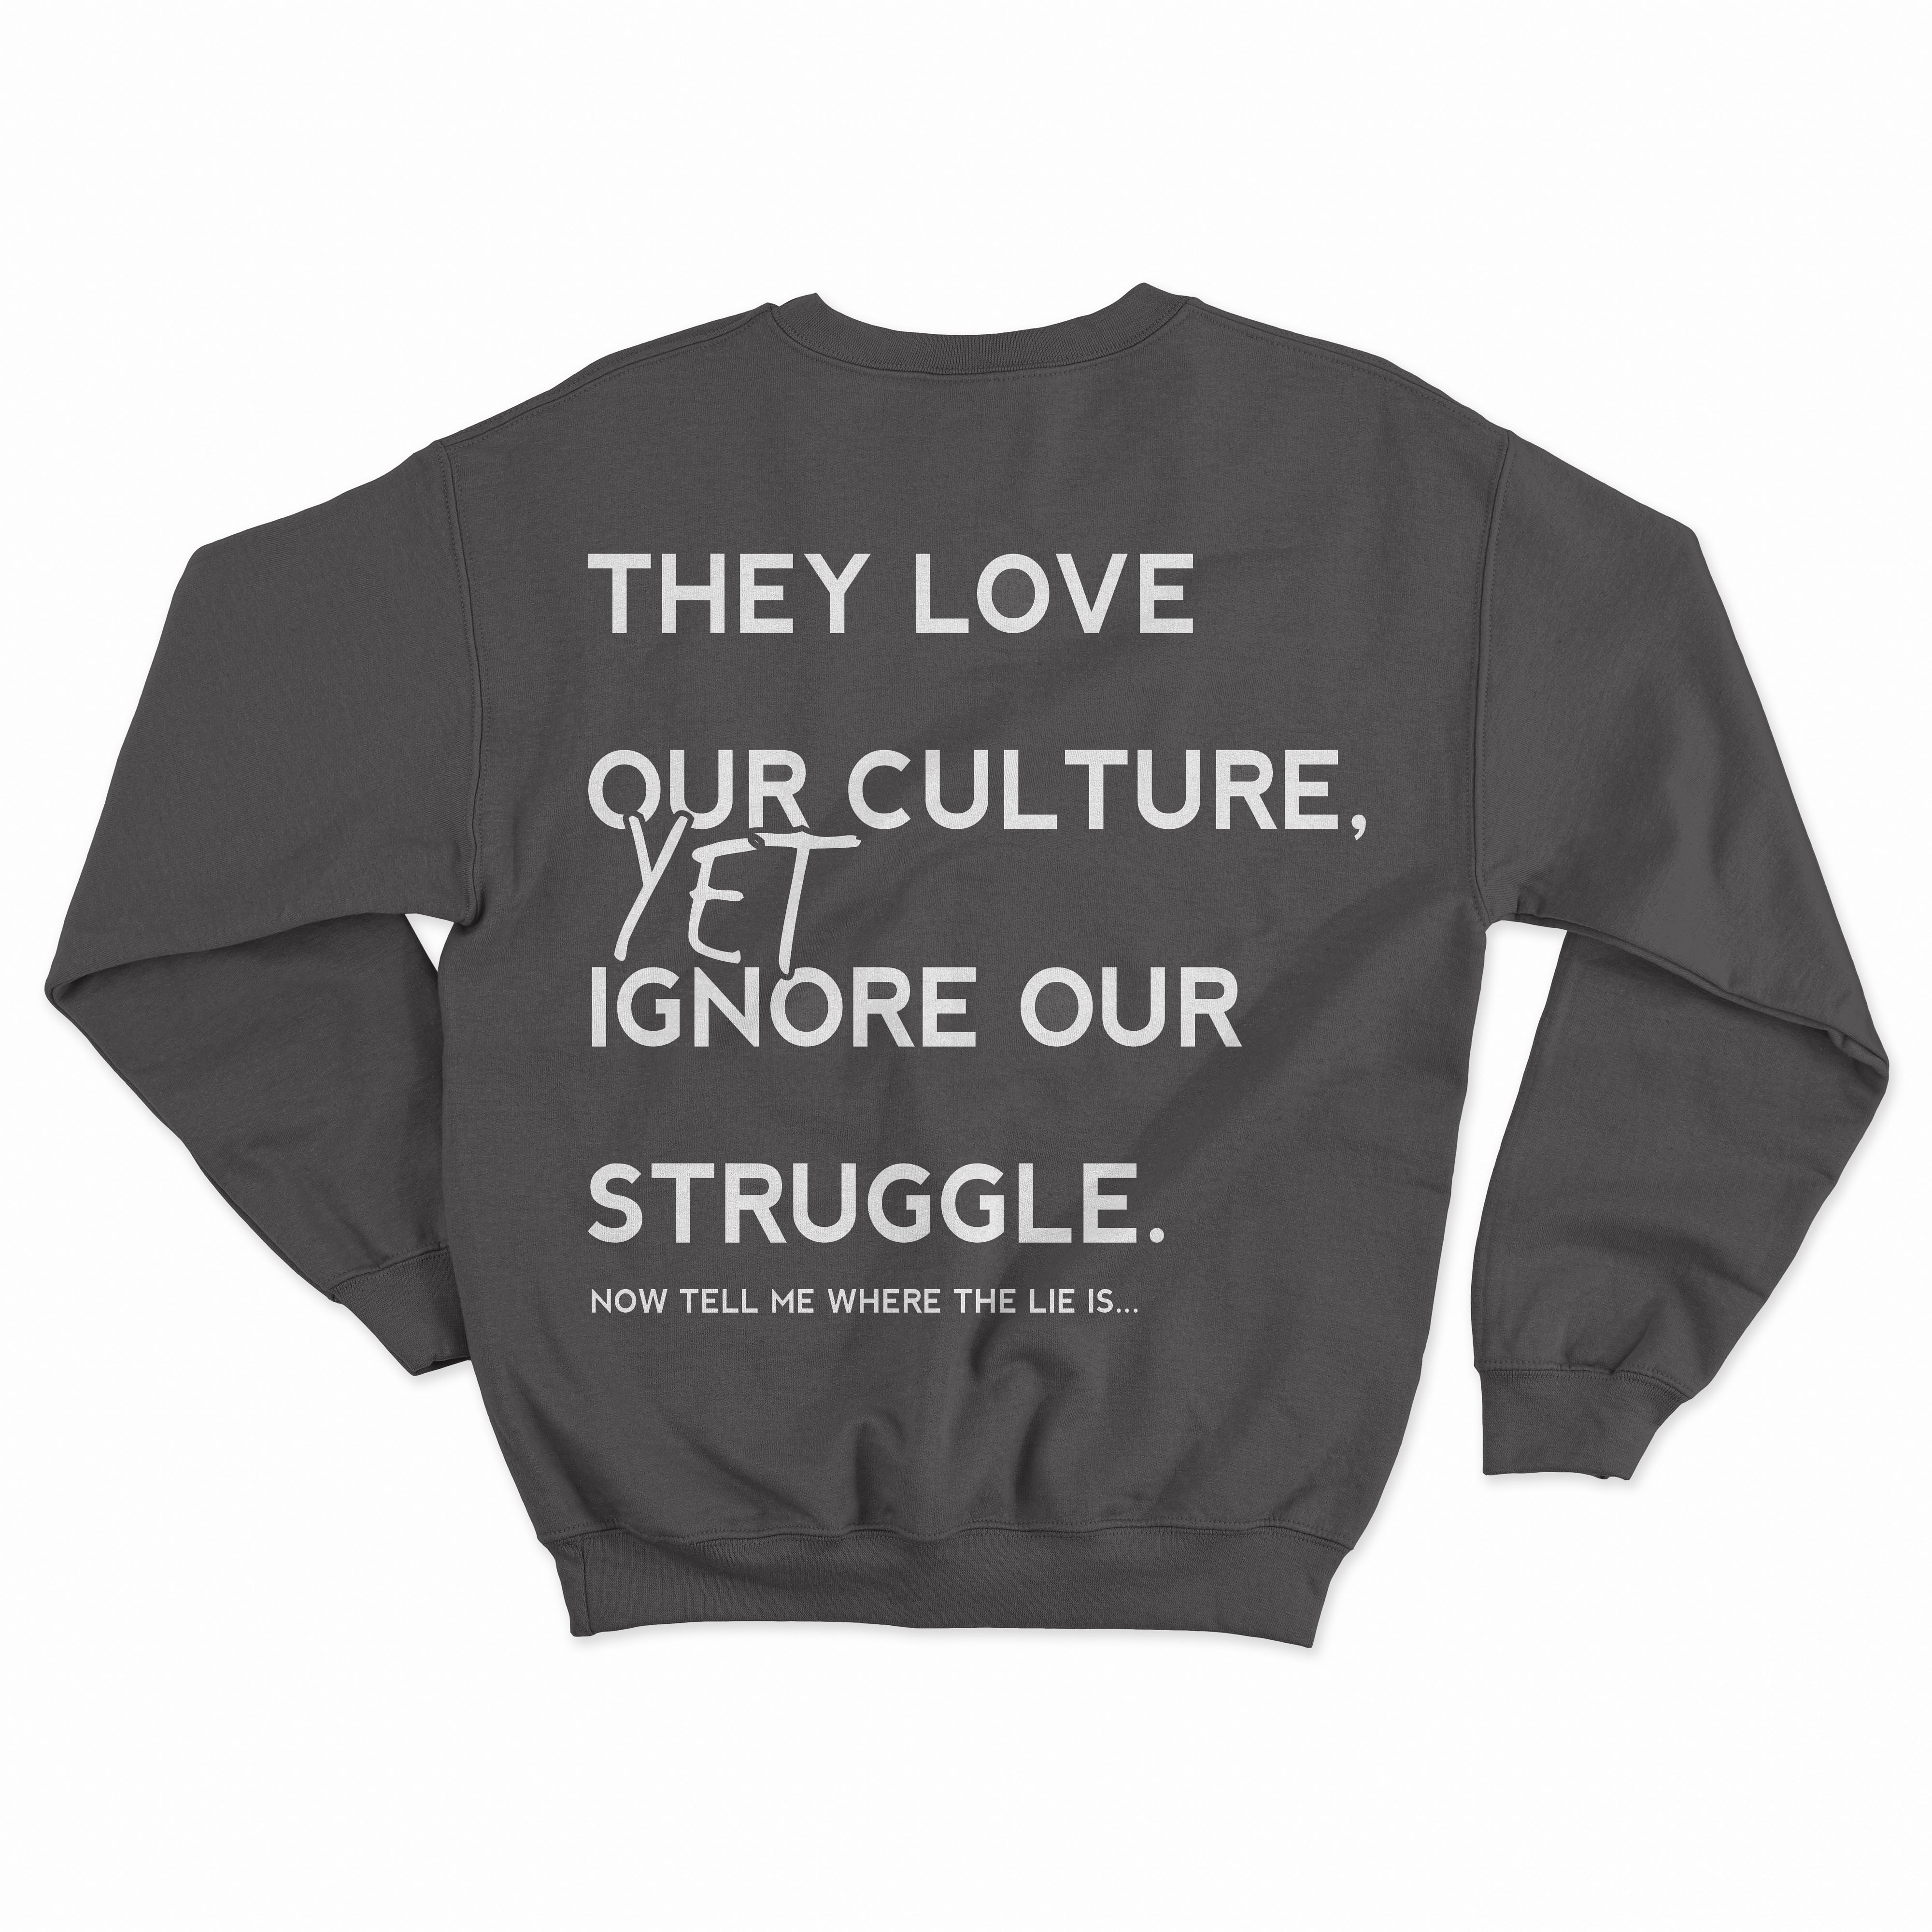 a2b56057 They love our Culture Sweatshirt · THE UNIVERSITY CLOSET, LLC ...